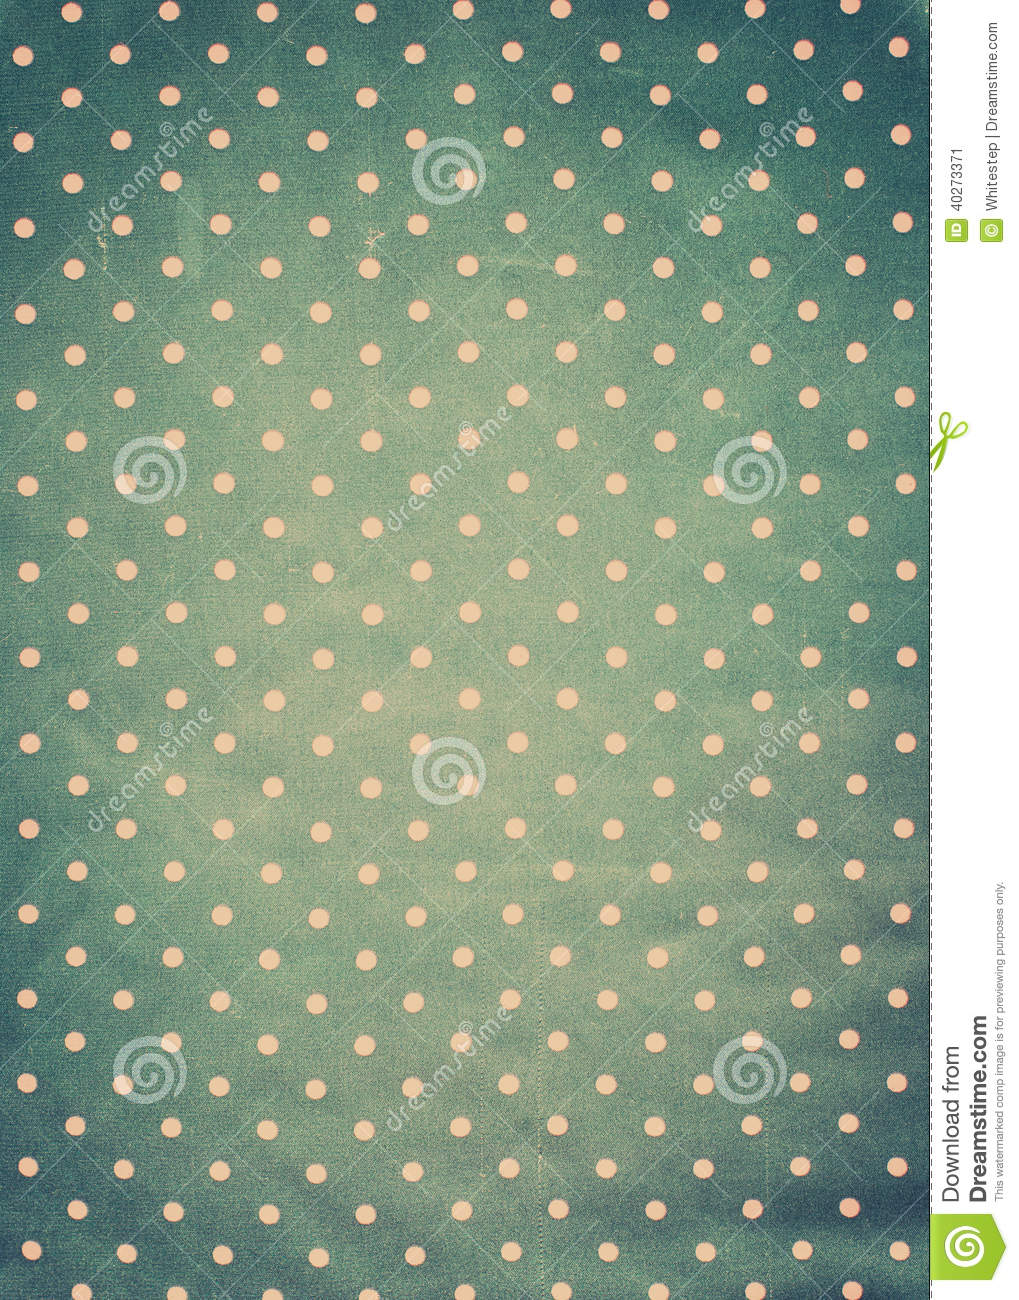 Vintage Fabric Texture With Pink Polka Dots Stock Photo